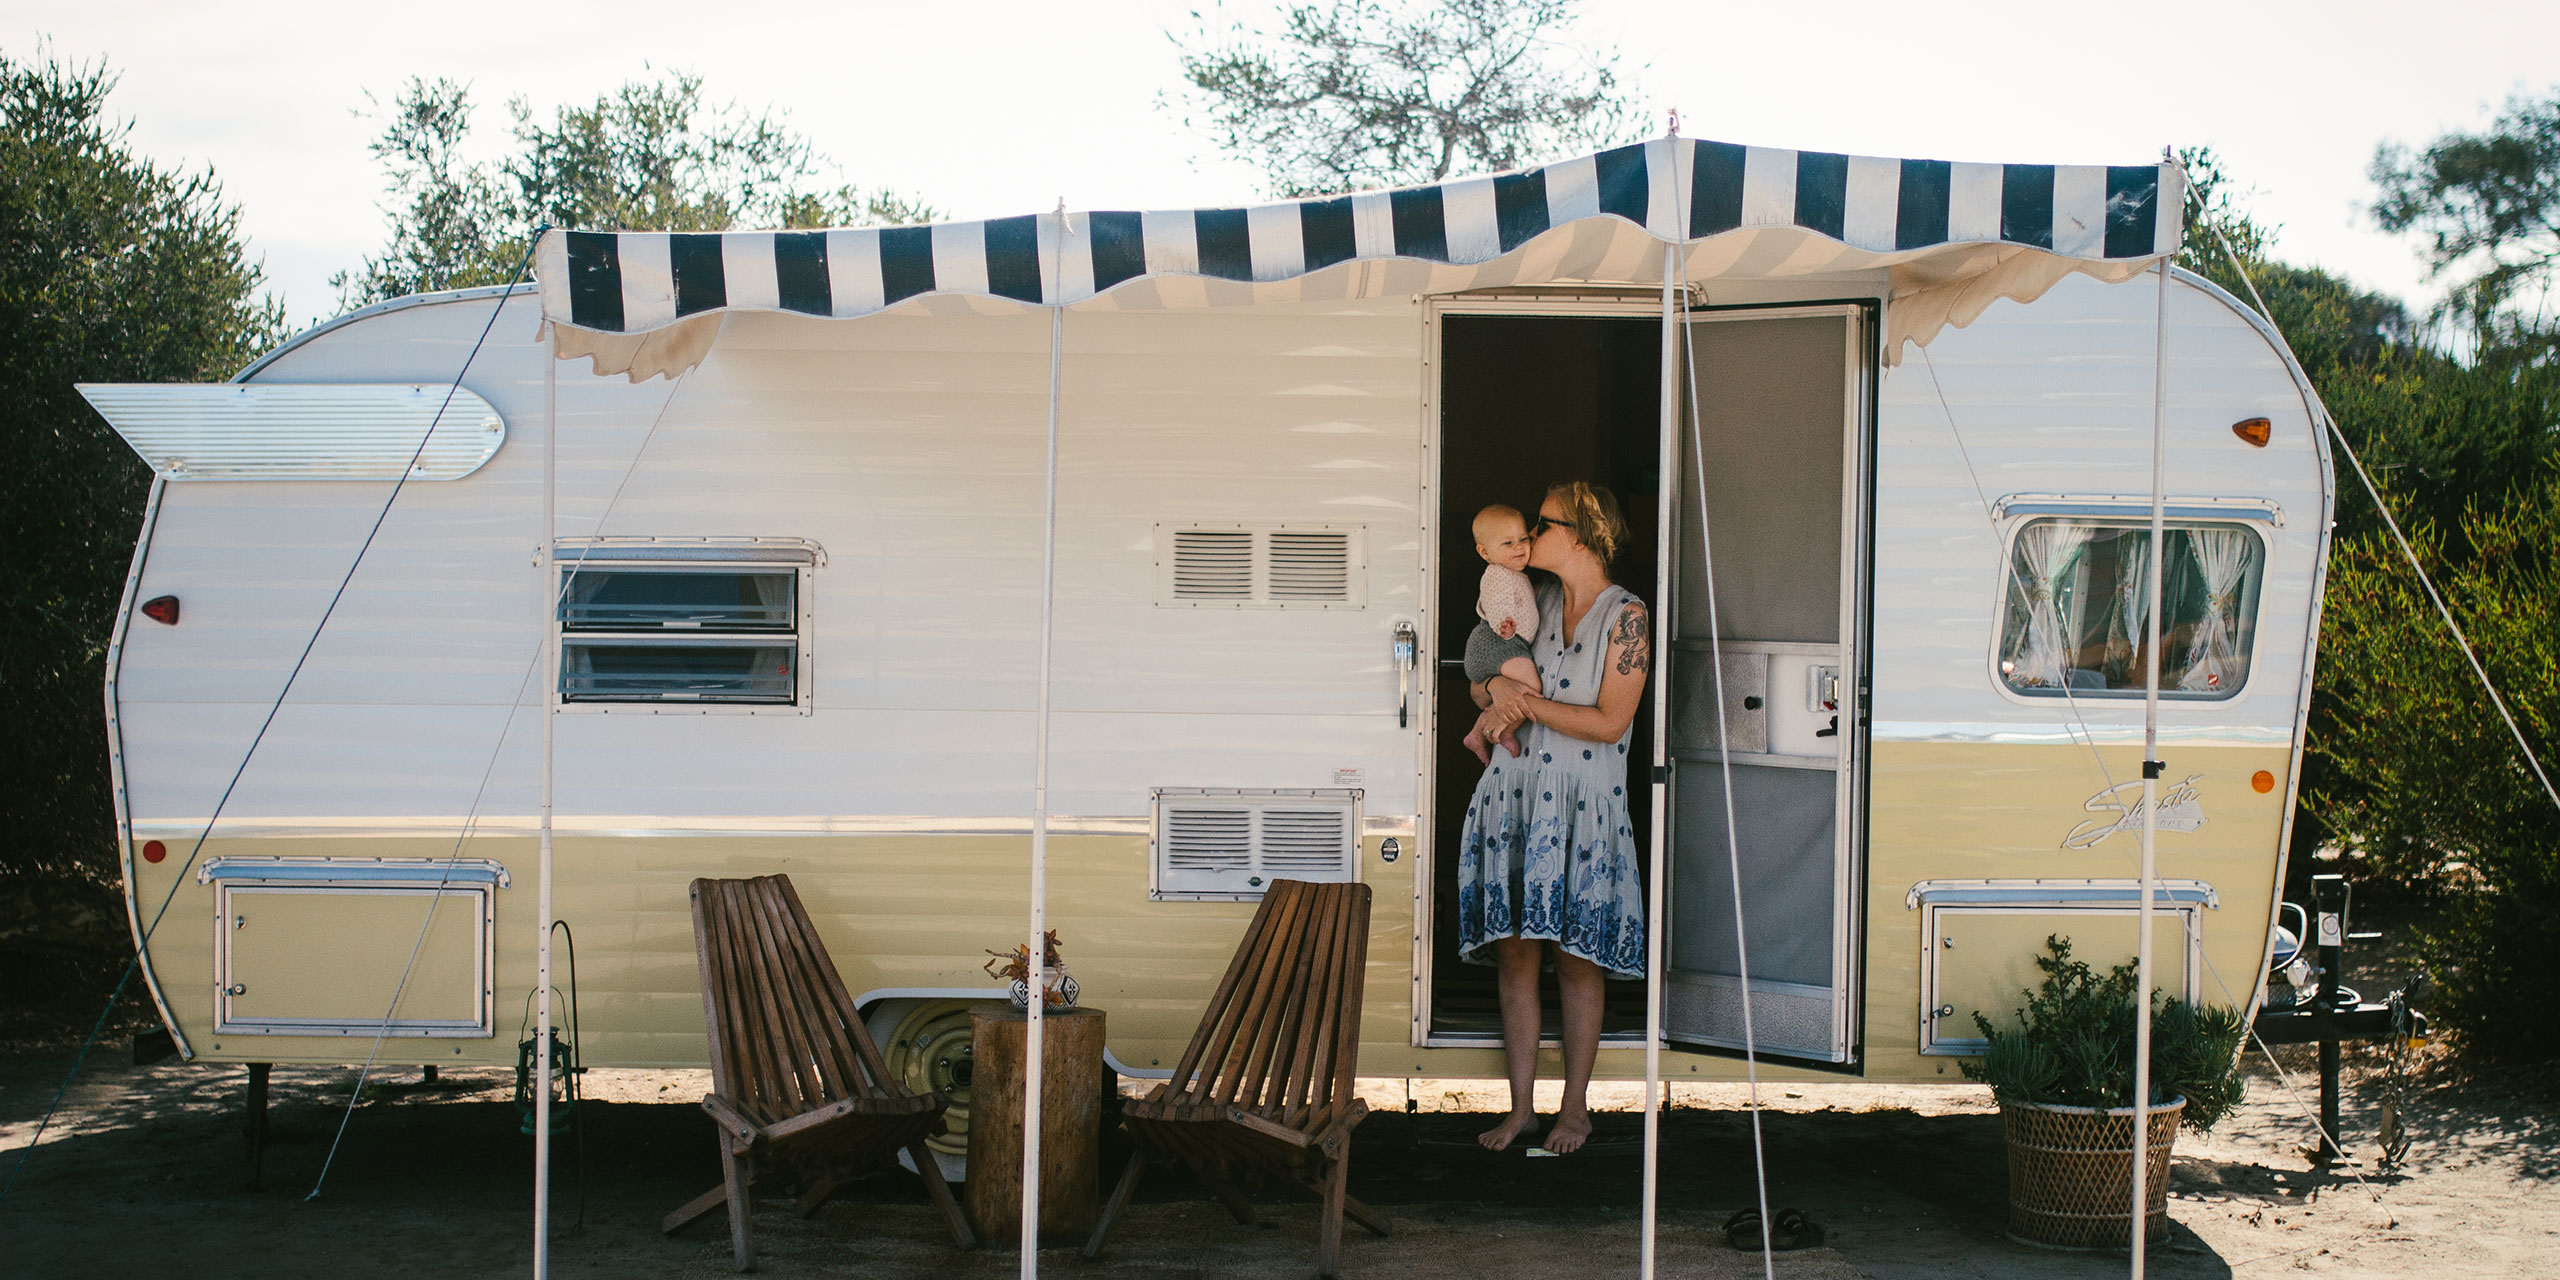 Airstream Caravan Vintage 9 coolest airstream travel trailer hotels in the u.s. | 2020